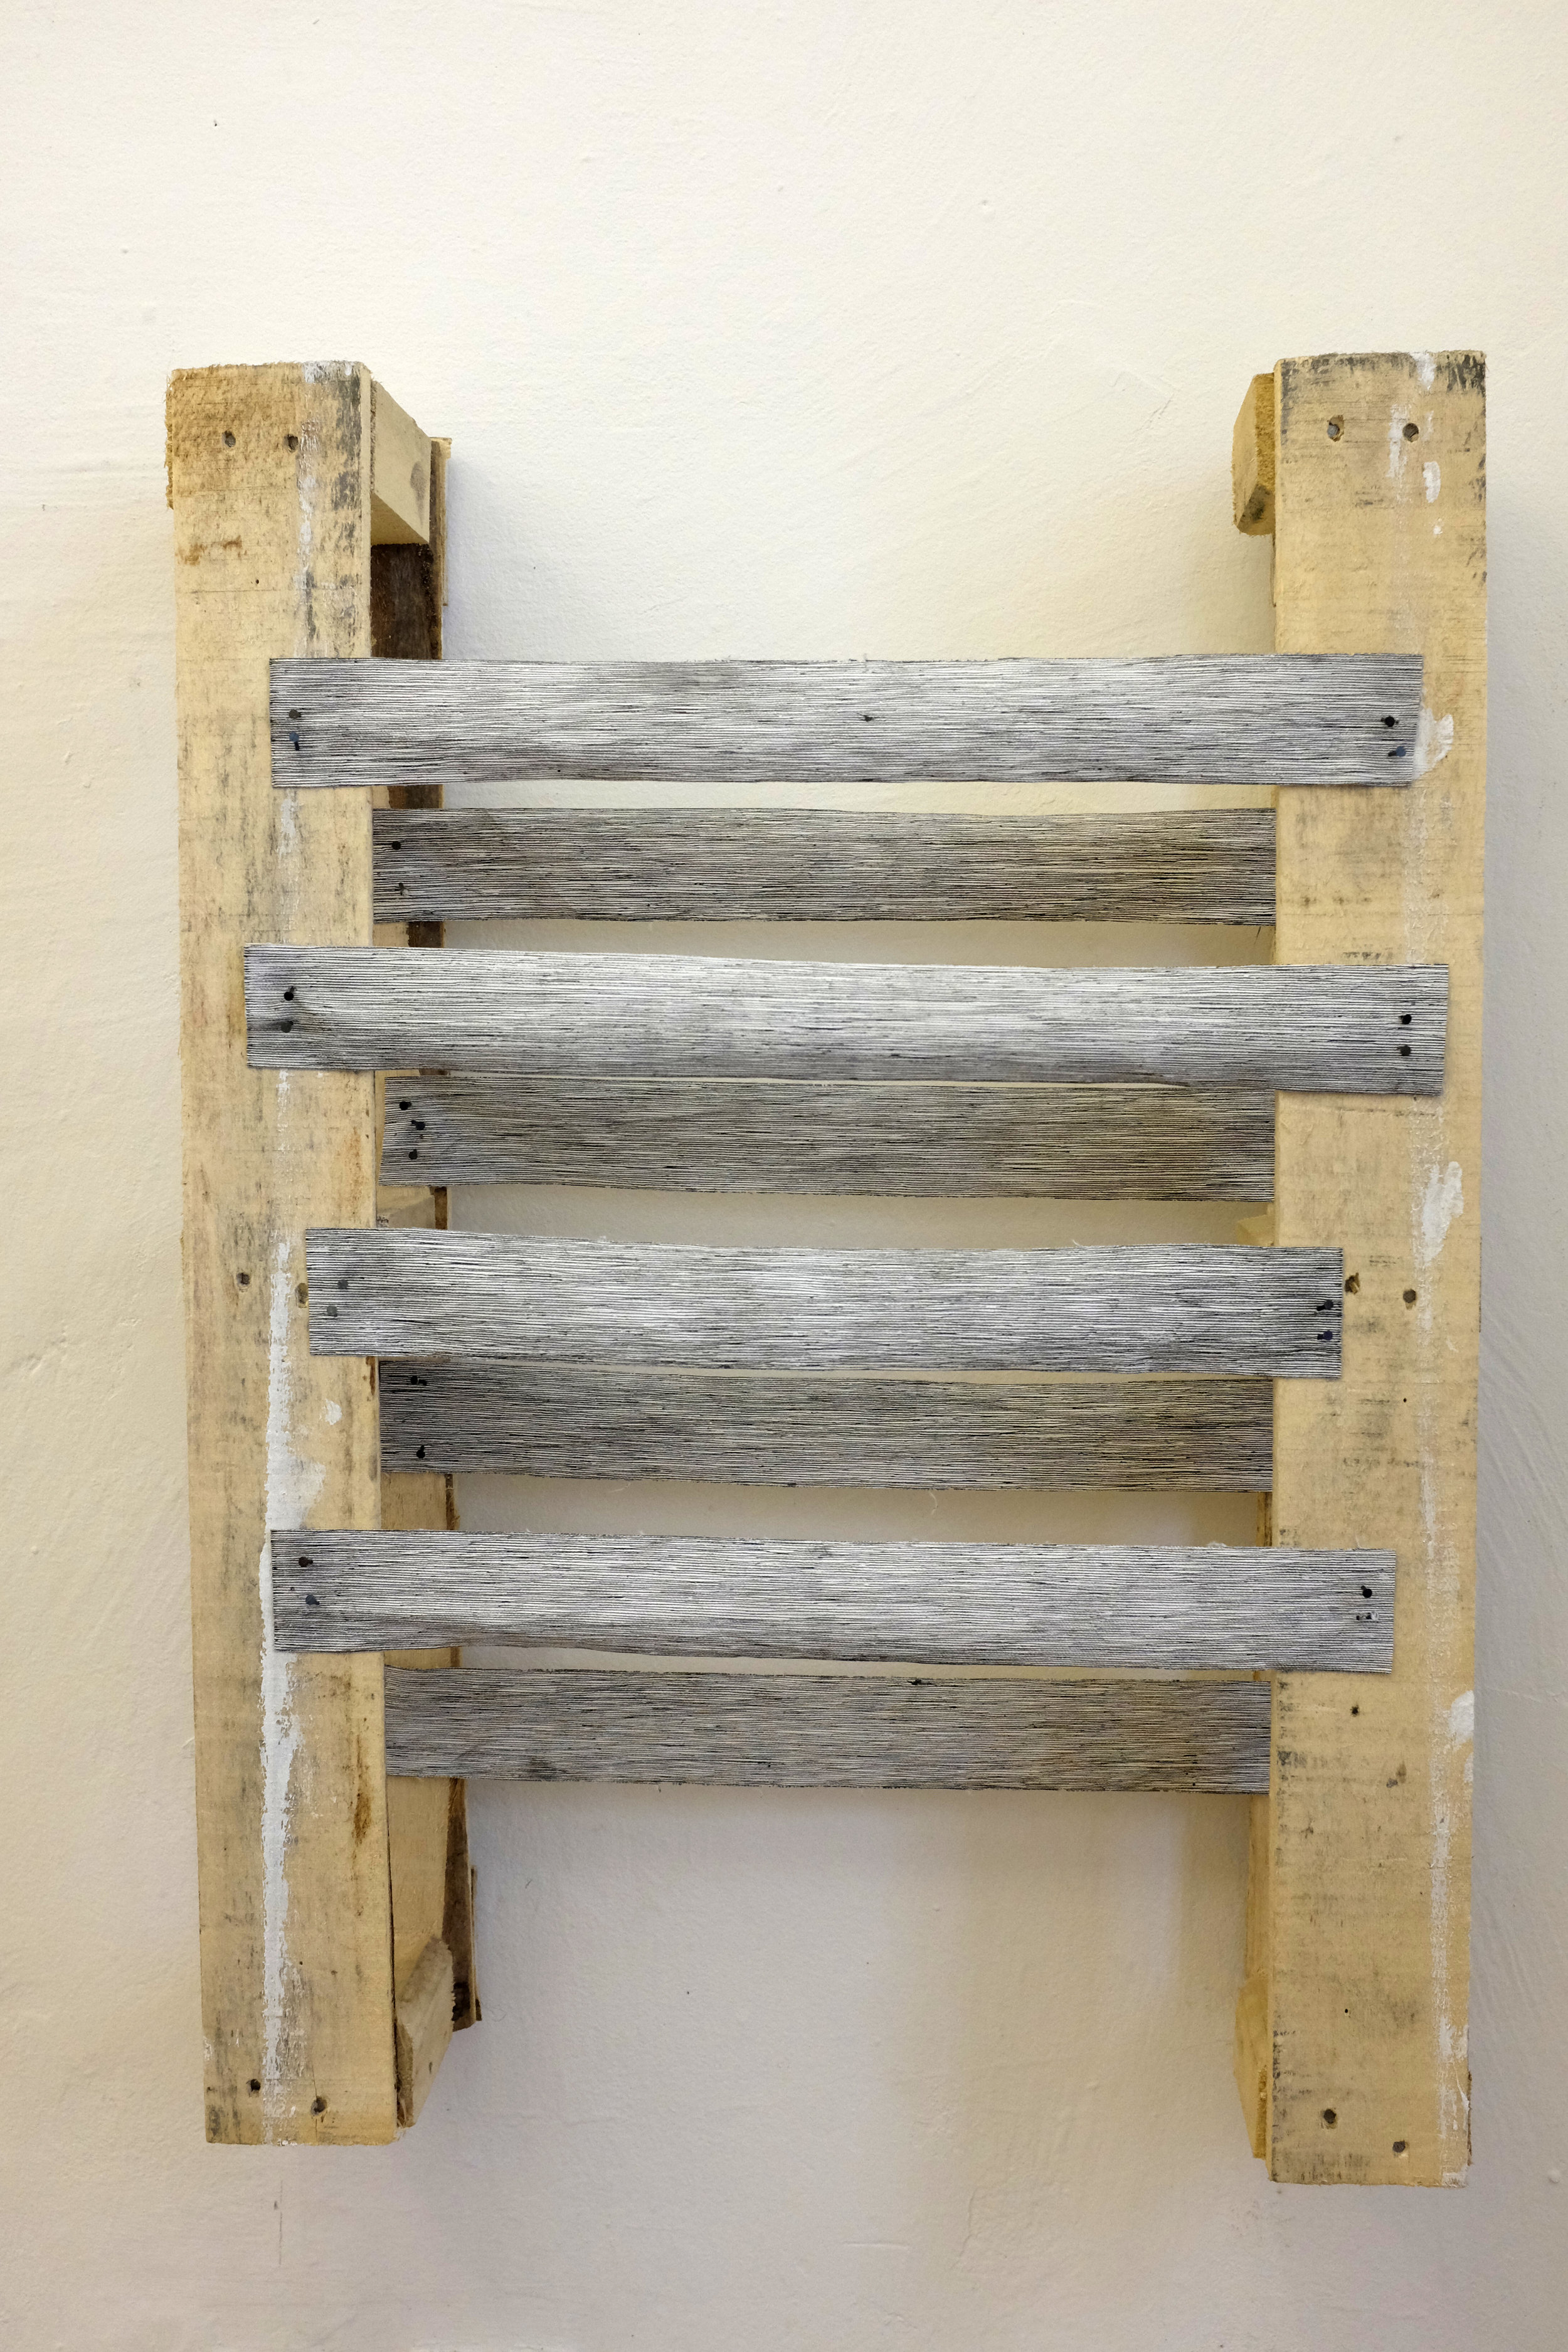 A decrepit ladder or a decrepit's ladder,  2018. Ink on canvas, nails, screws and wood. Exhibited at Horánkszy 27 pop-up gallery in Budapest.